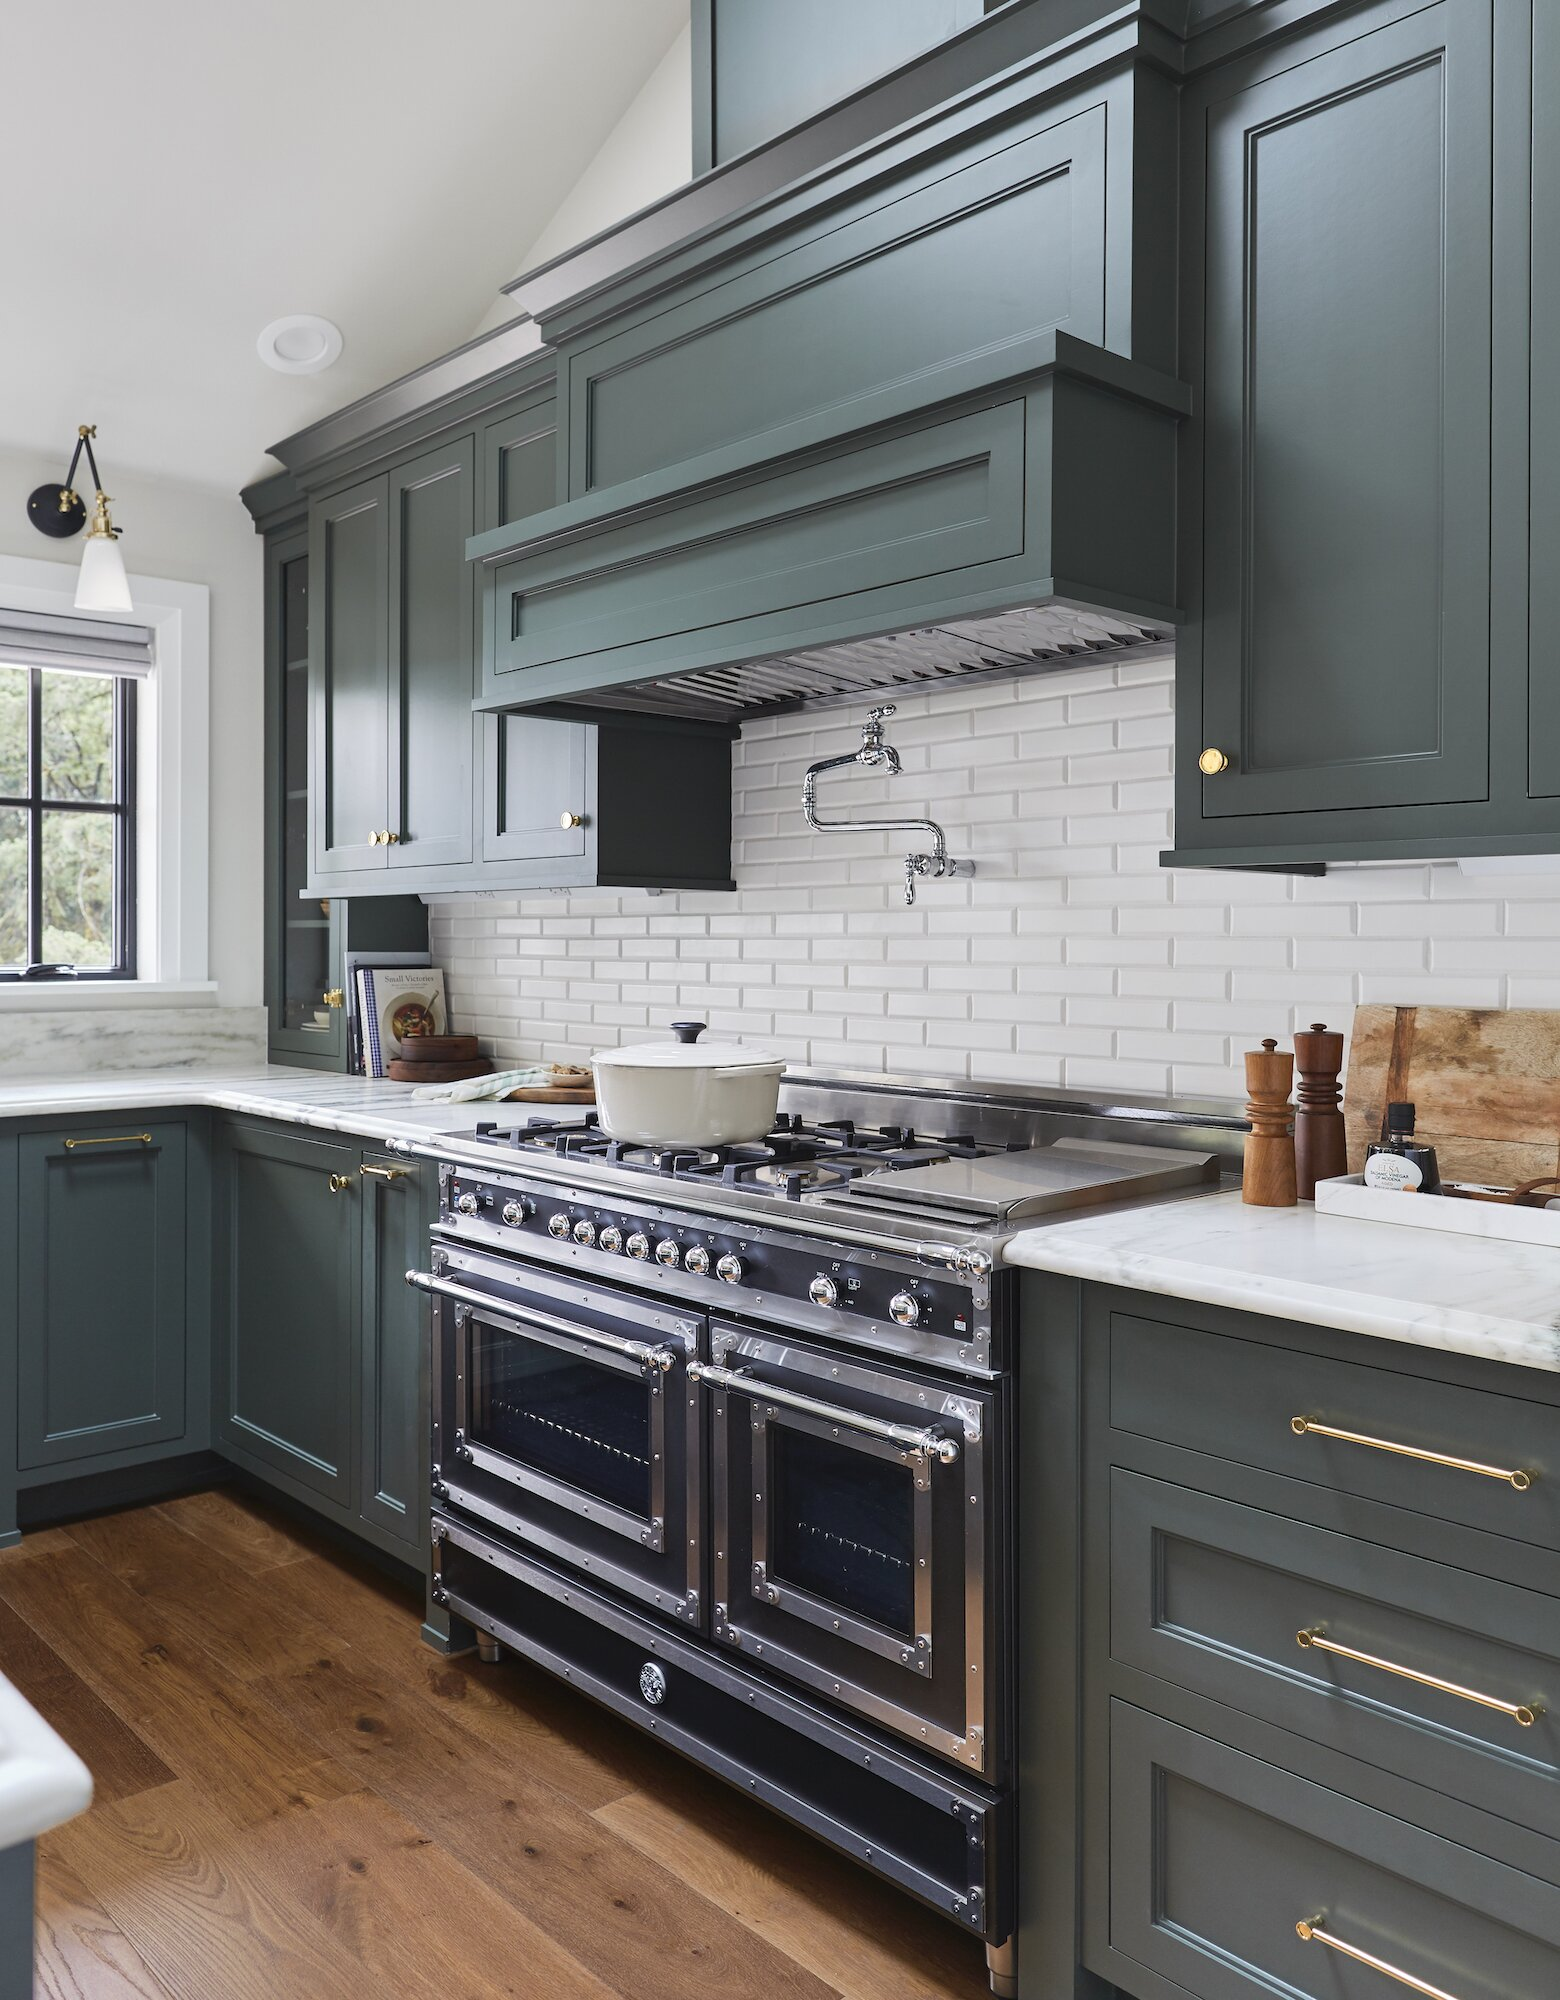 Pewter Green kitchen by Emily Henderson